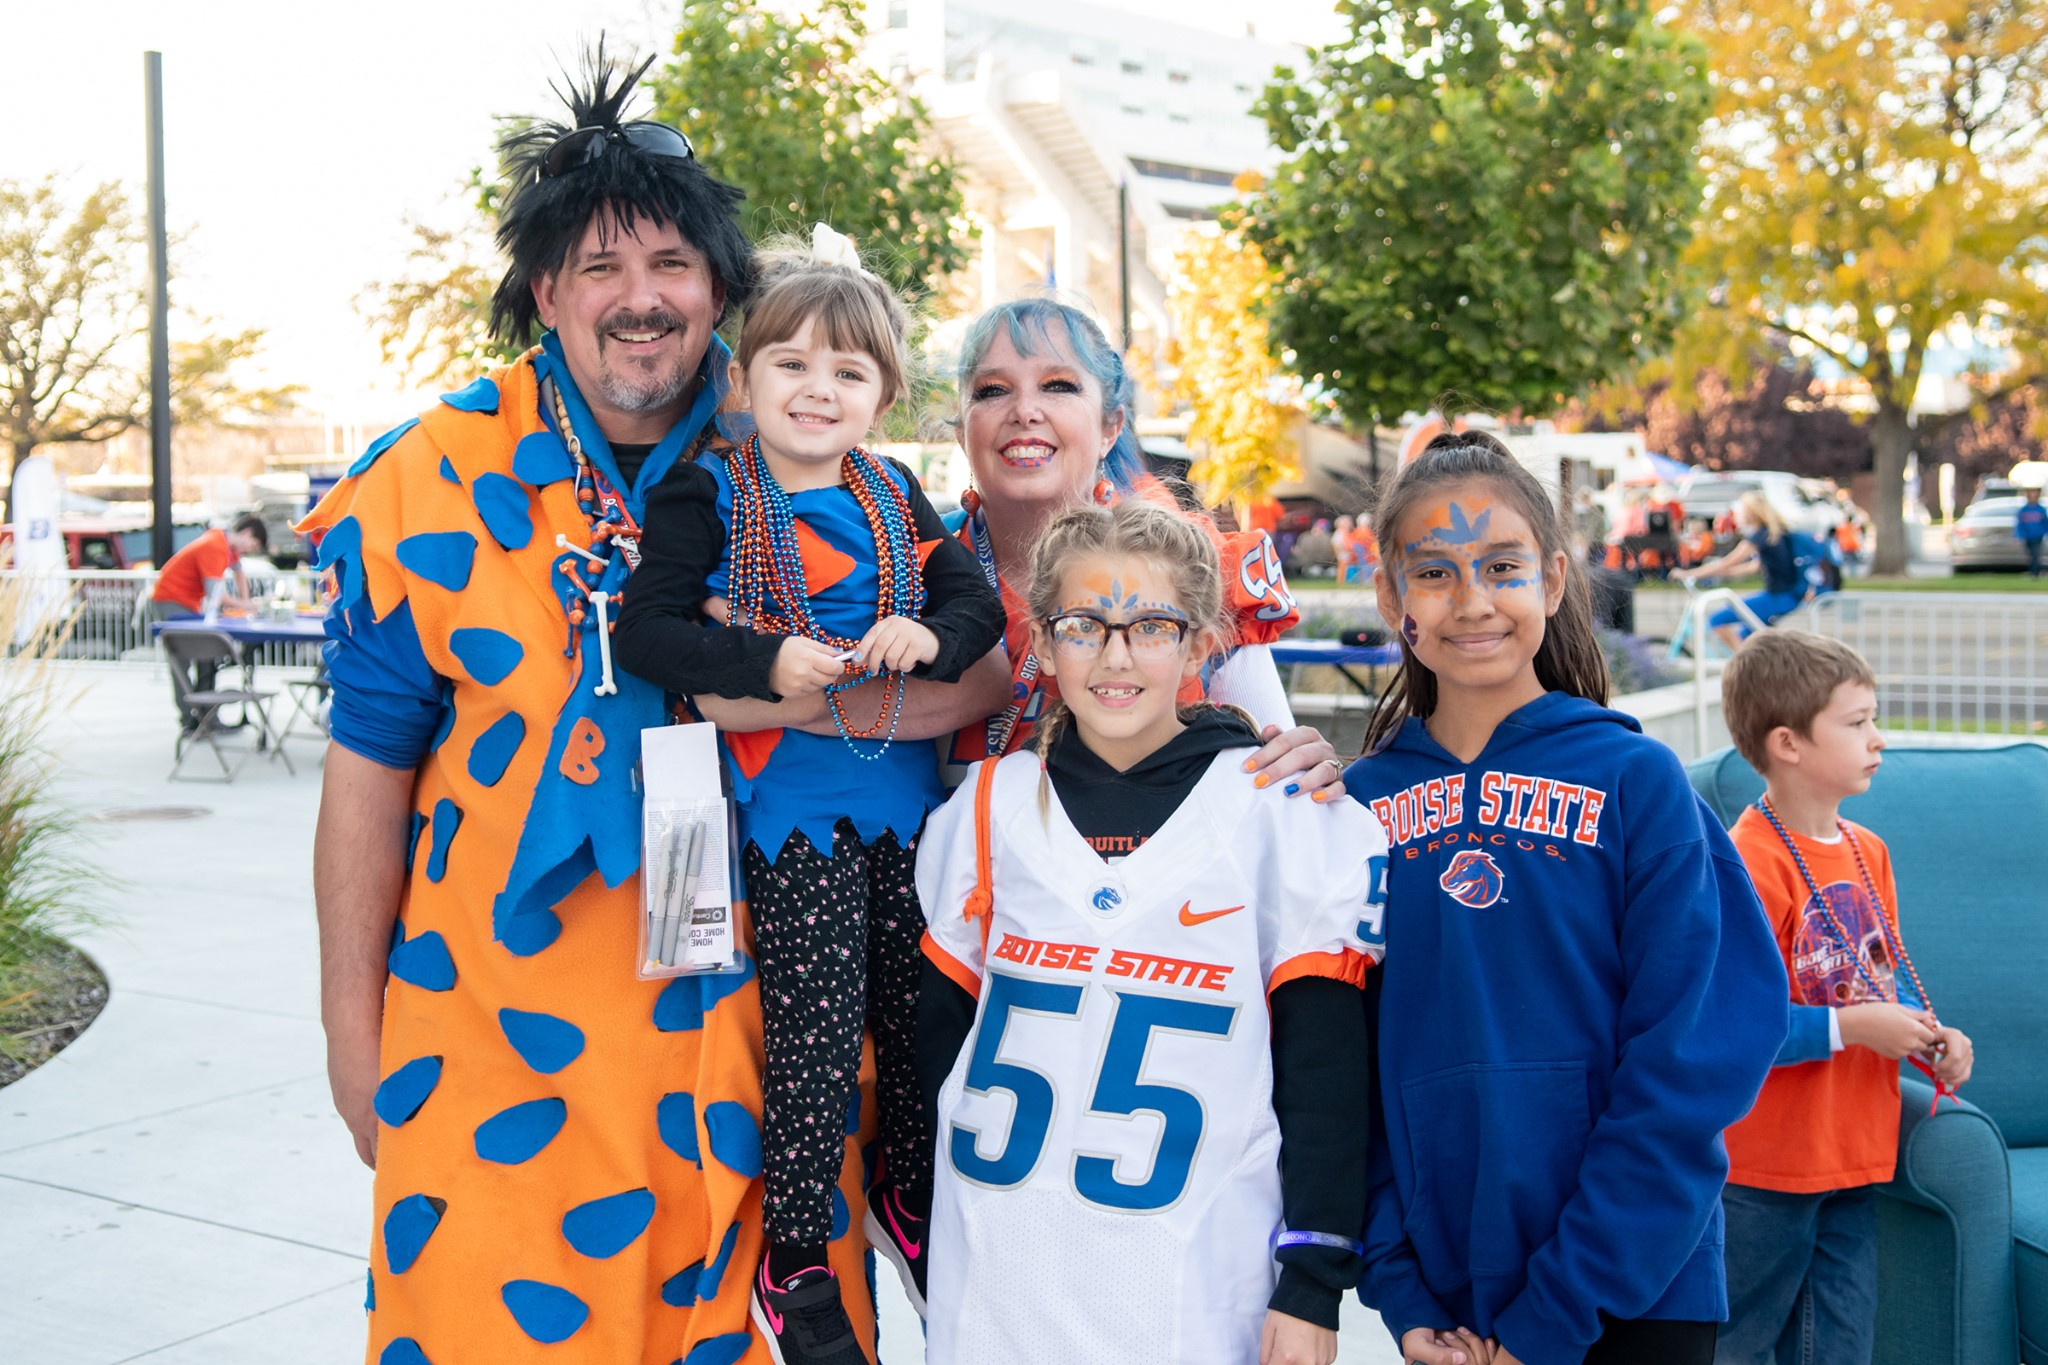 boise state family of fans